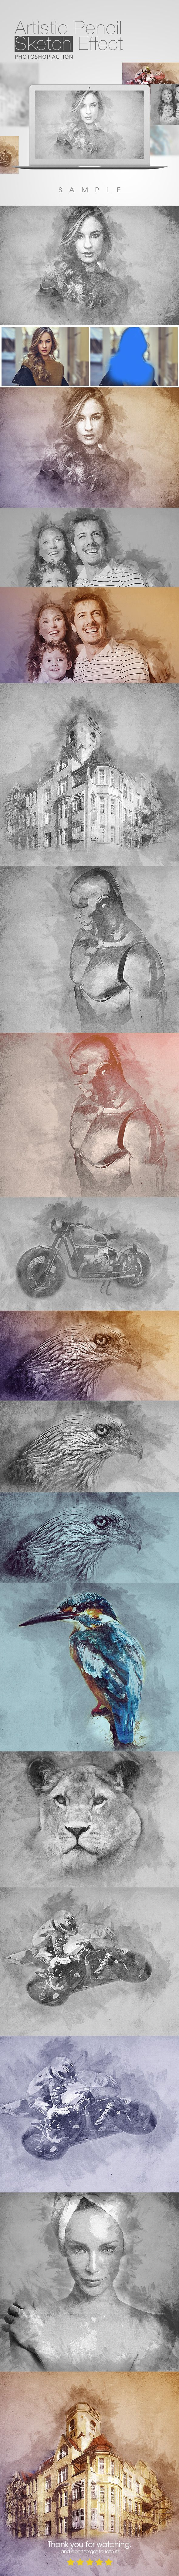 Artistic Pencil Sketch Effect - Photo Effects Actions